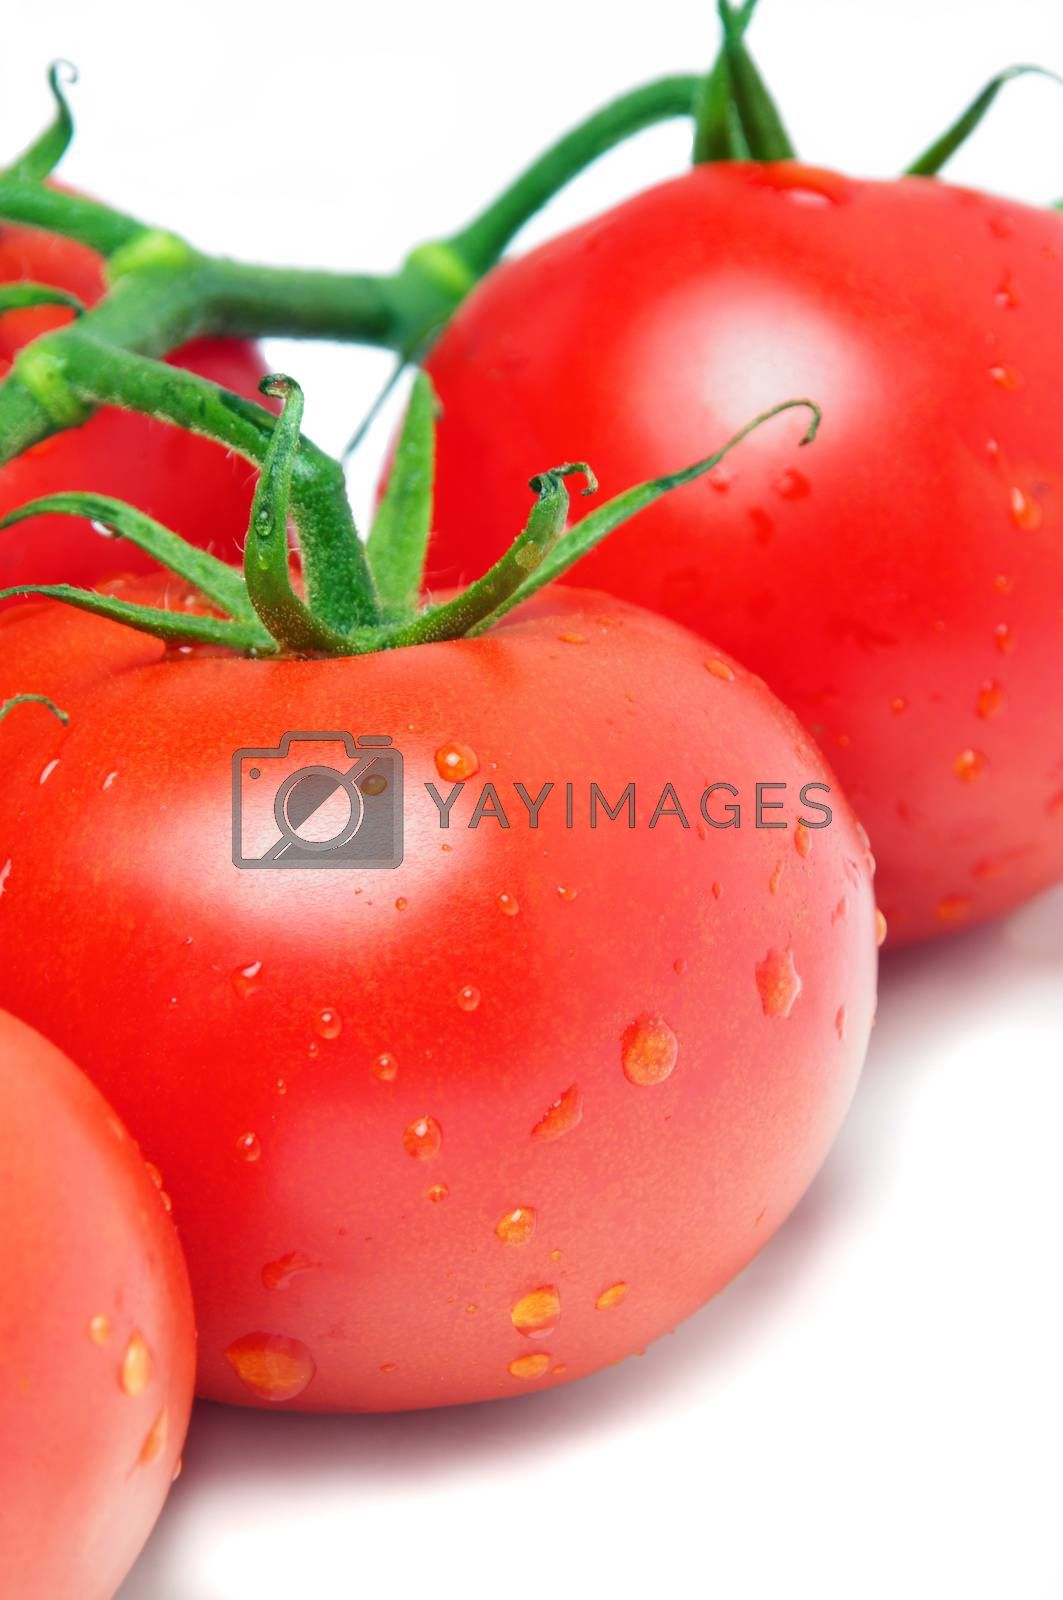 wet tomatoes closeup on plate